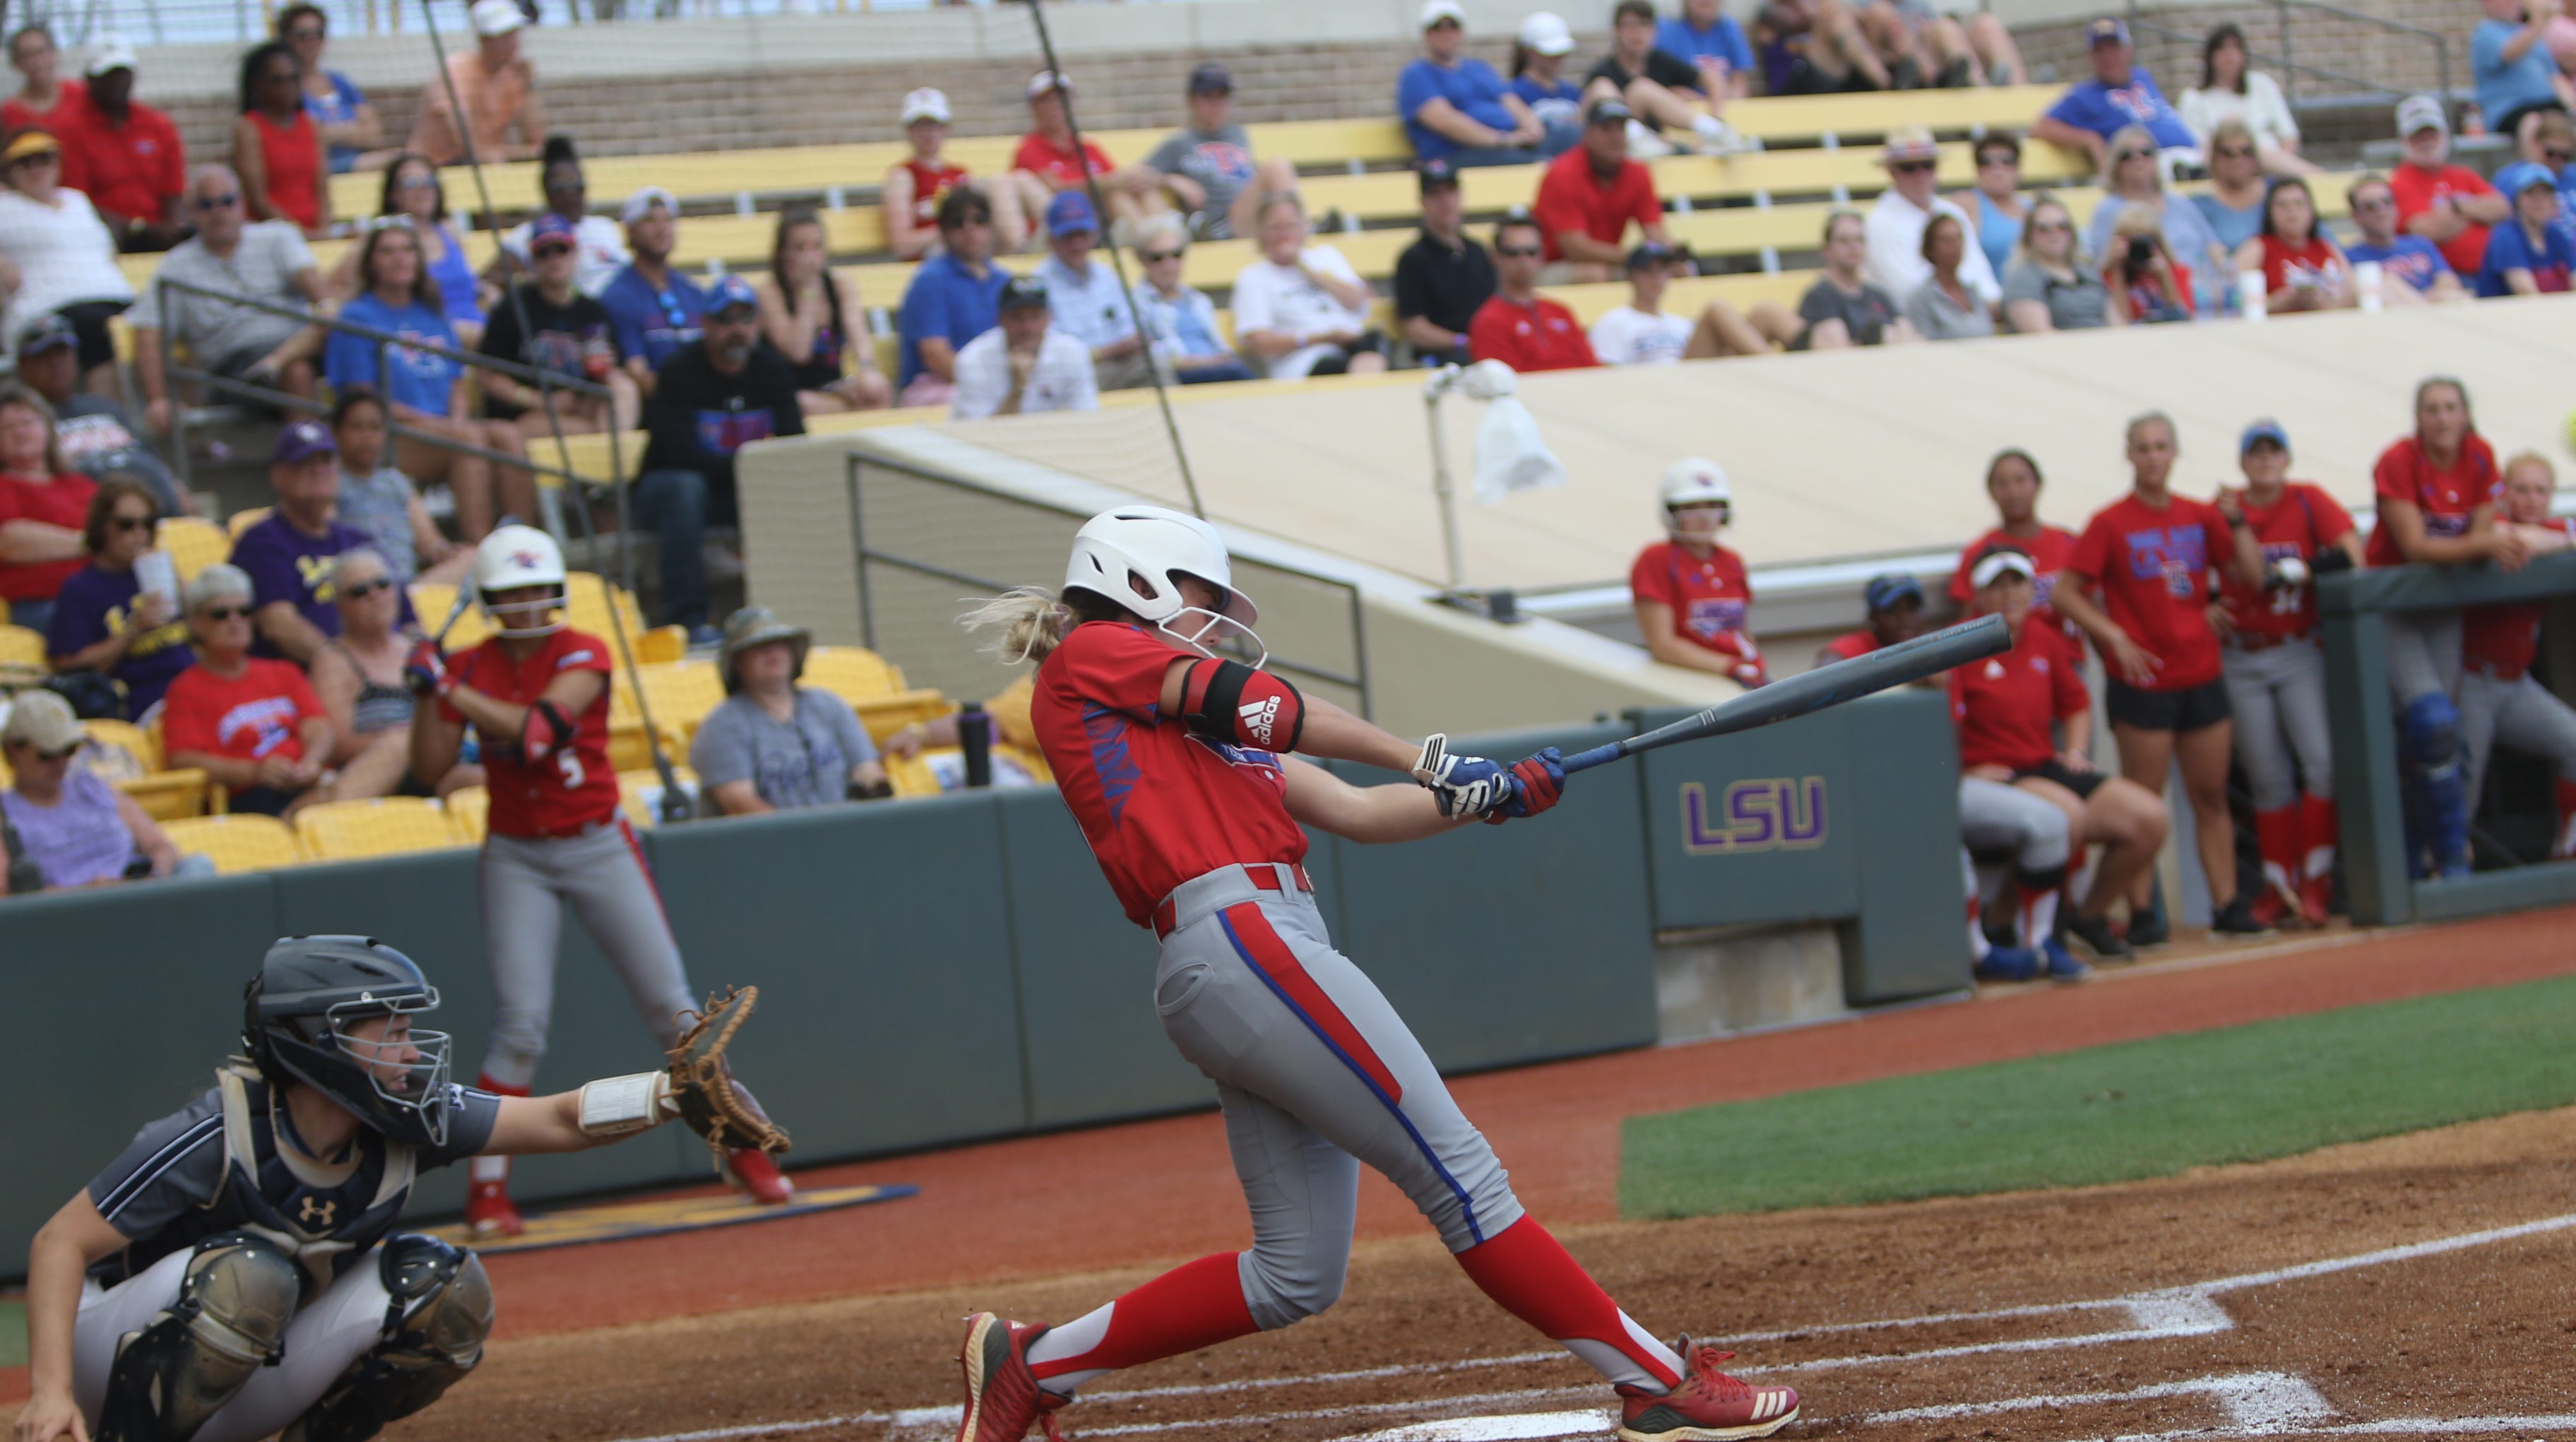 Louisiana Tech senior Morgan Turkoly (21) swings through a pitch against Monmouth Saturday, May 18 during NCAA regionals at Tiger Park on LSU's campus.